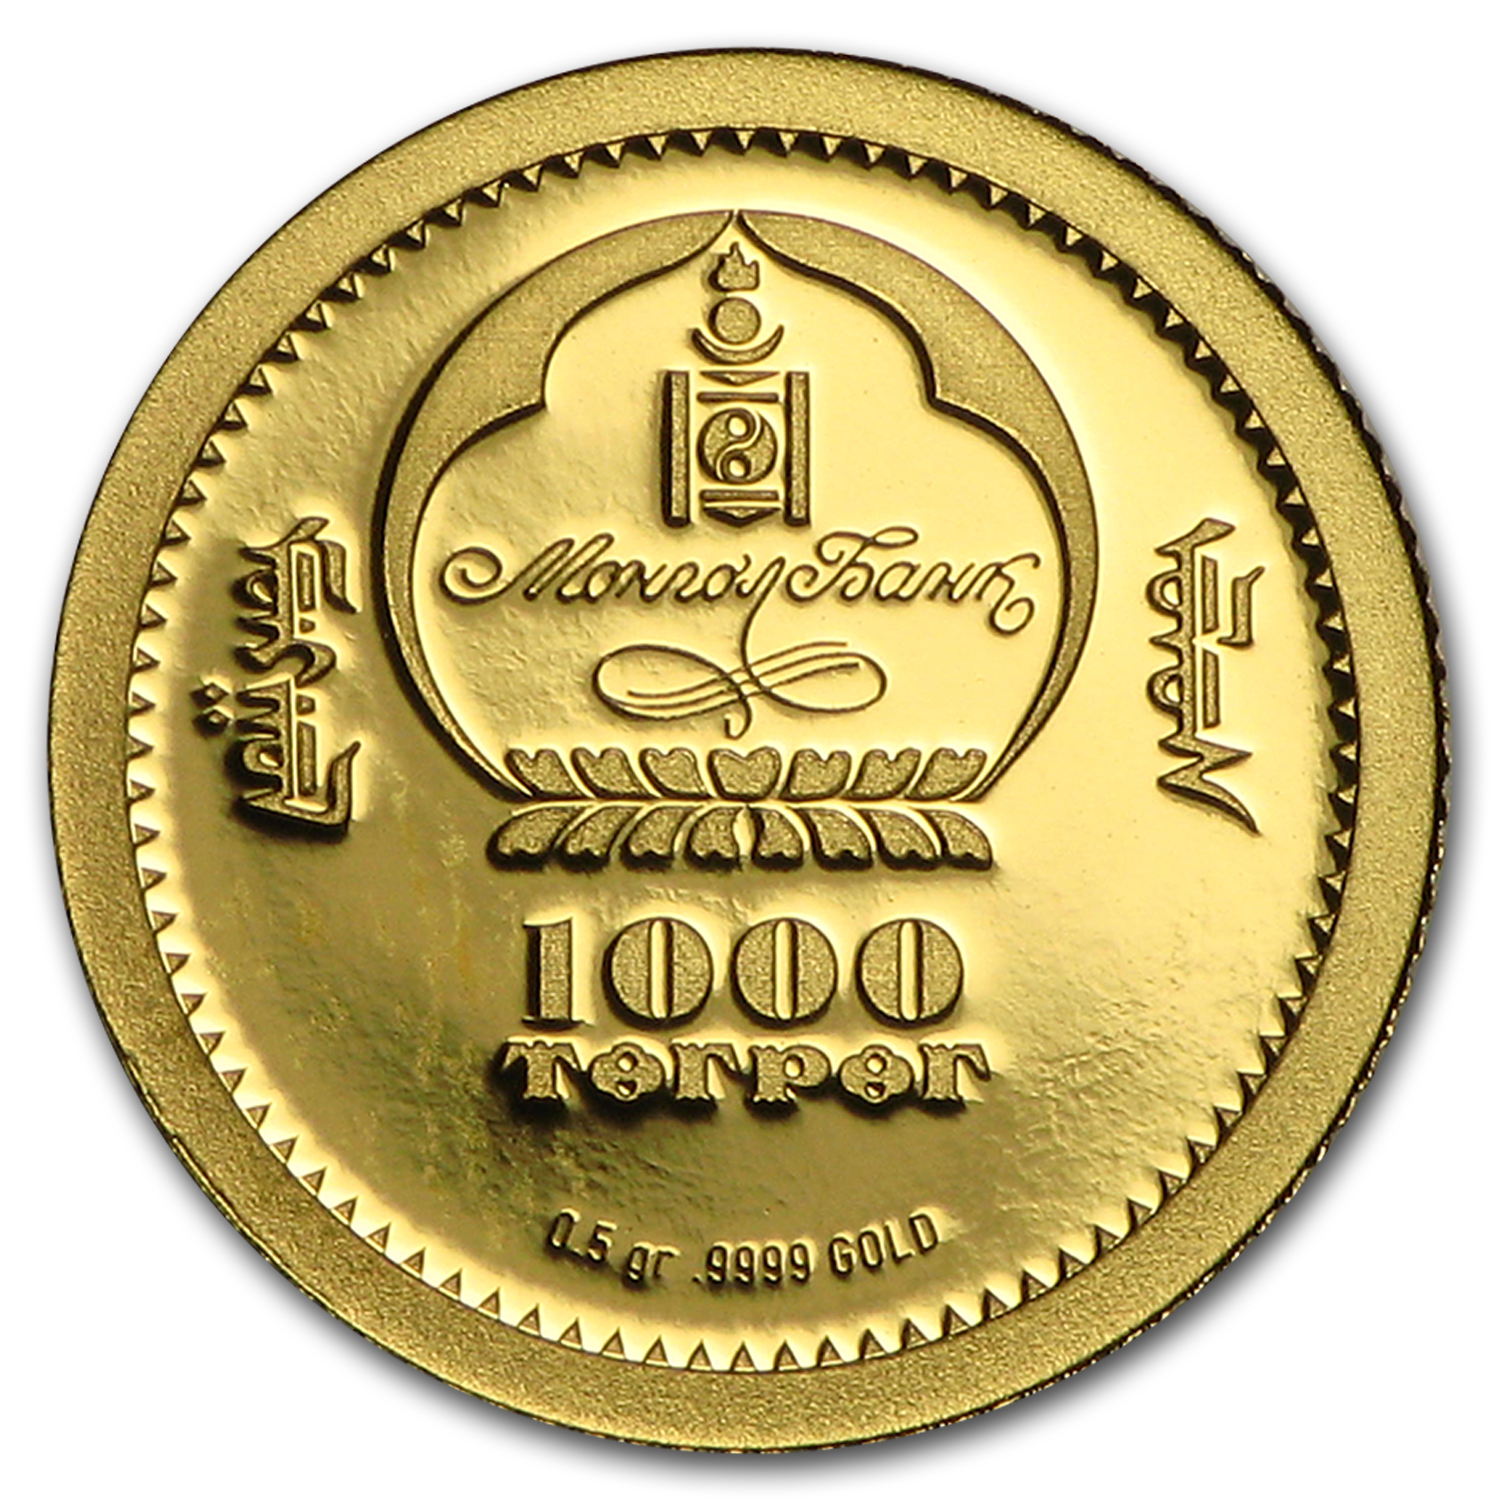 2016 Mongolia 1/2 gram Prf Gold 1,000 Togrog Year of the Monkey